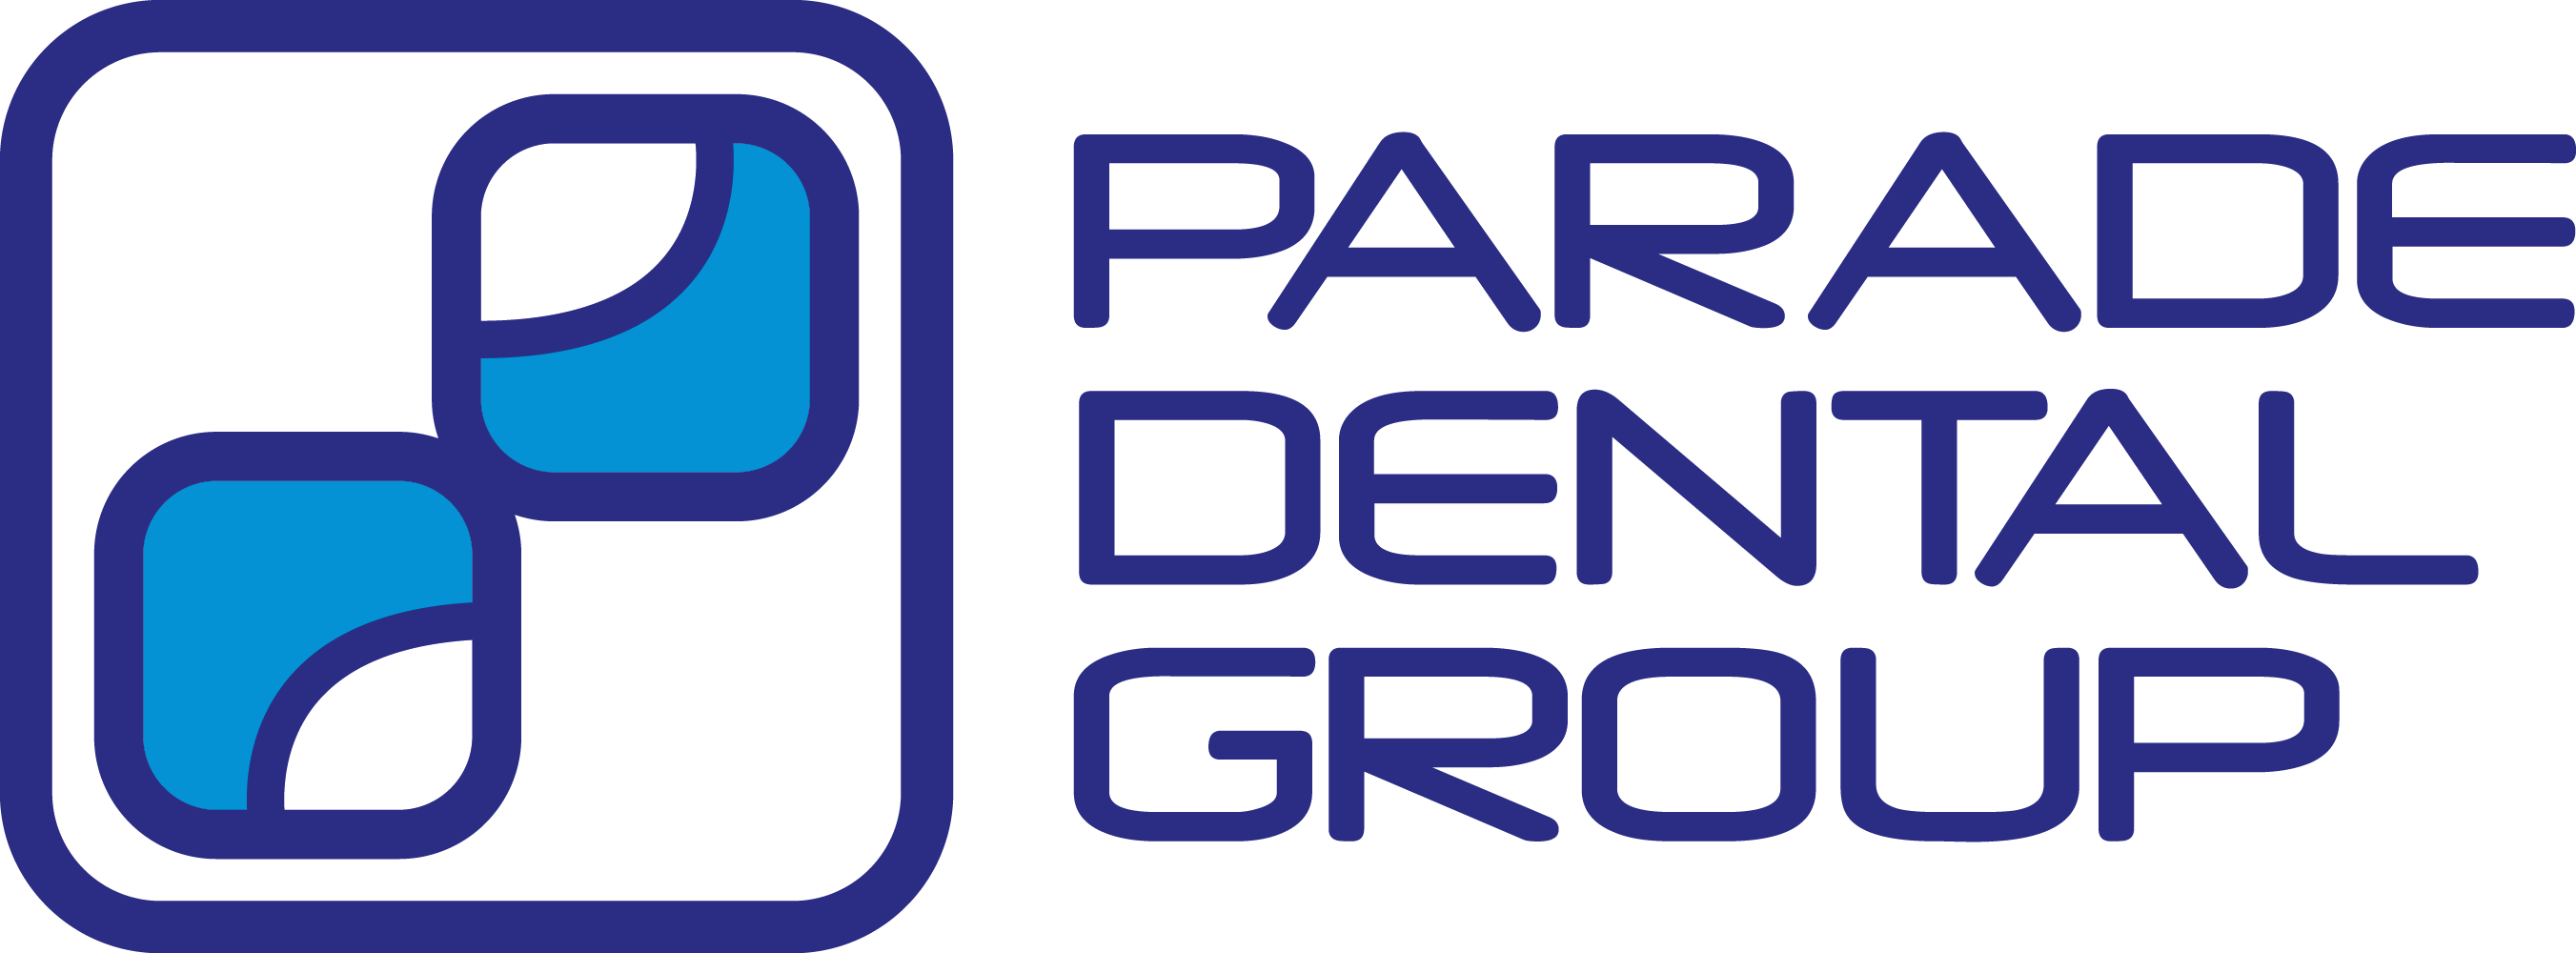 Parade Dental Group, Jersey